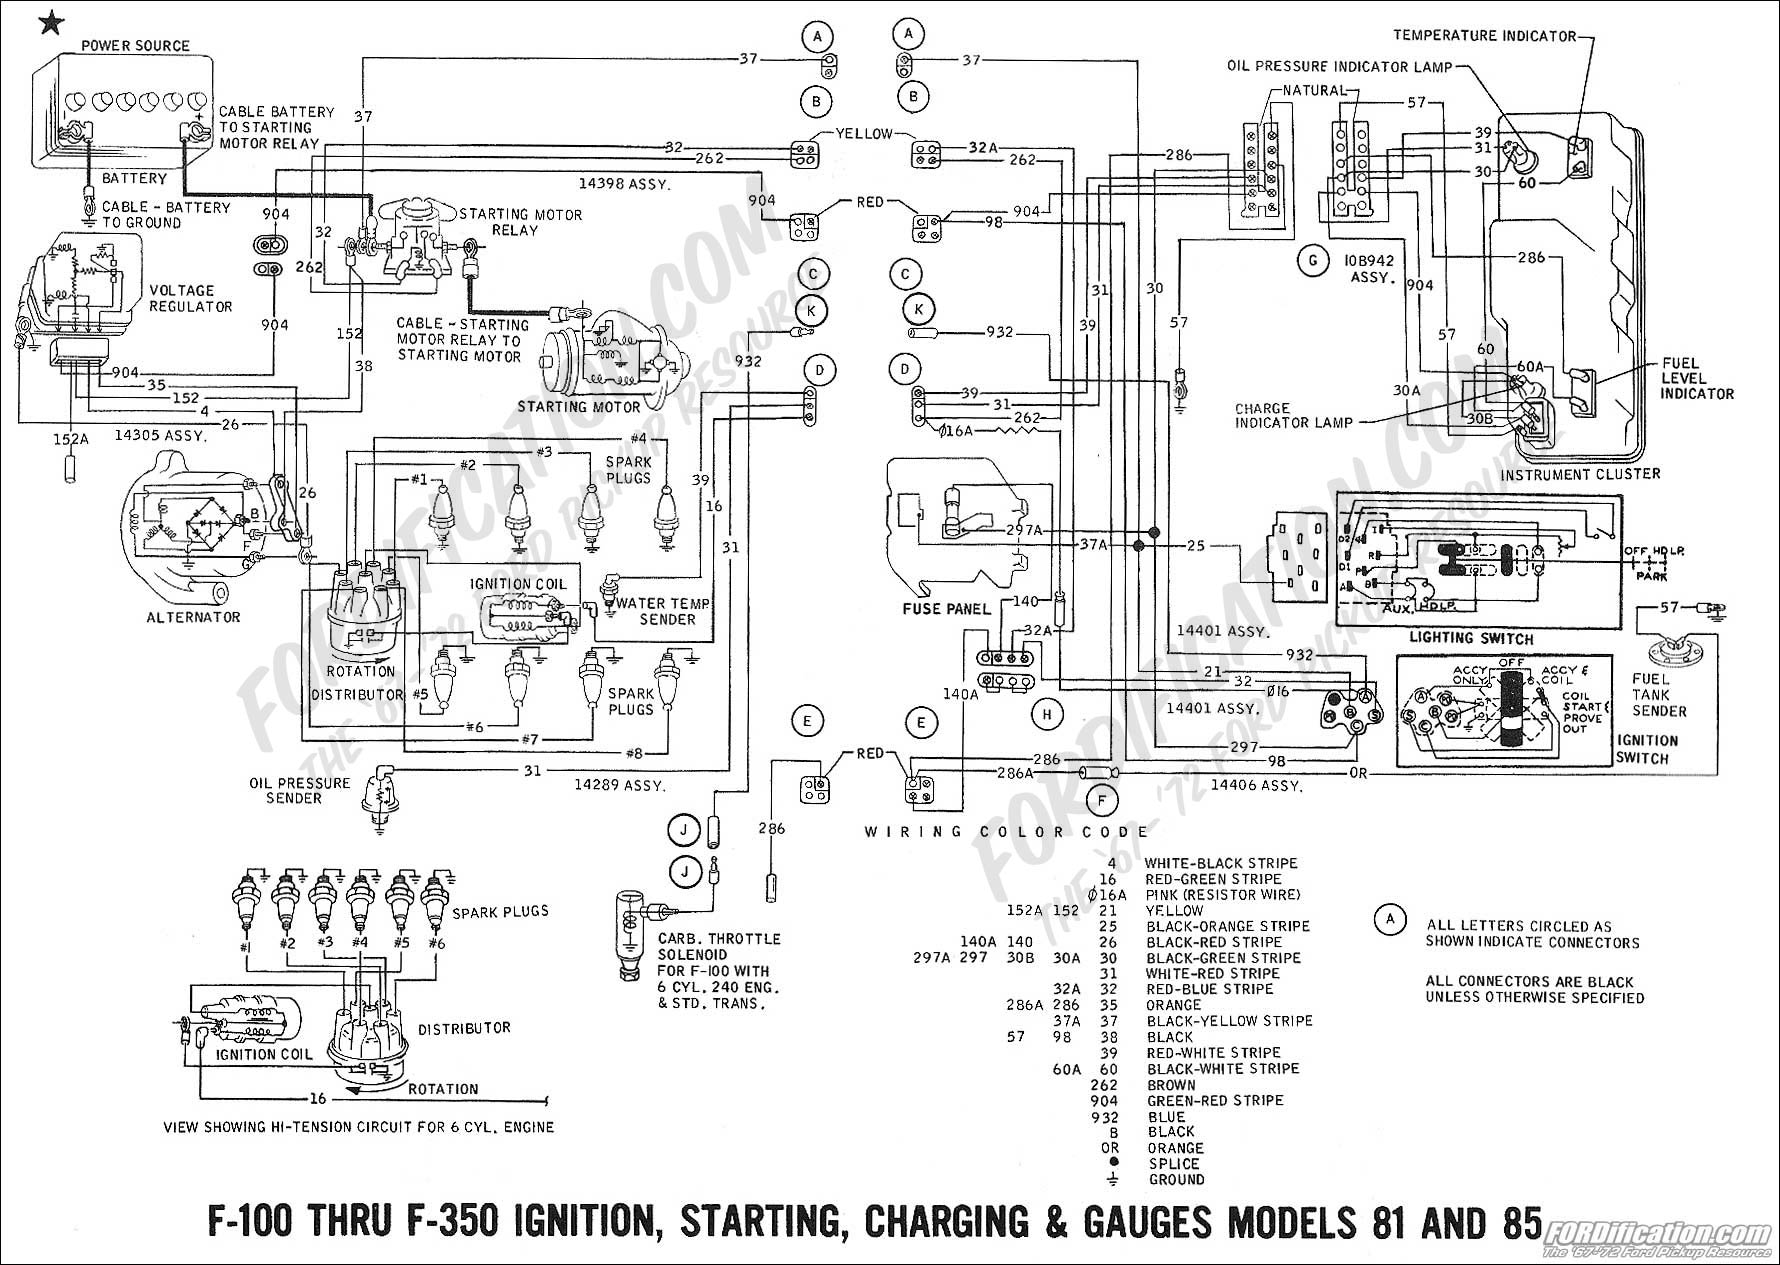 ford truck technical drawings and schematics section h wiring rh fordification com 1968 F100 Wiring Diagram 1953 ford truck wiring diagram